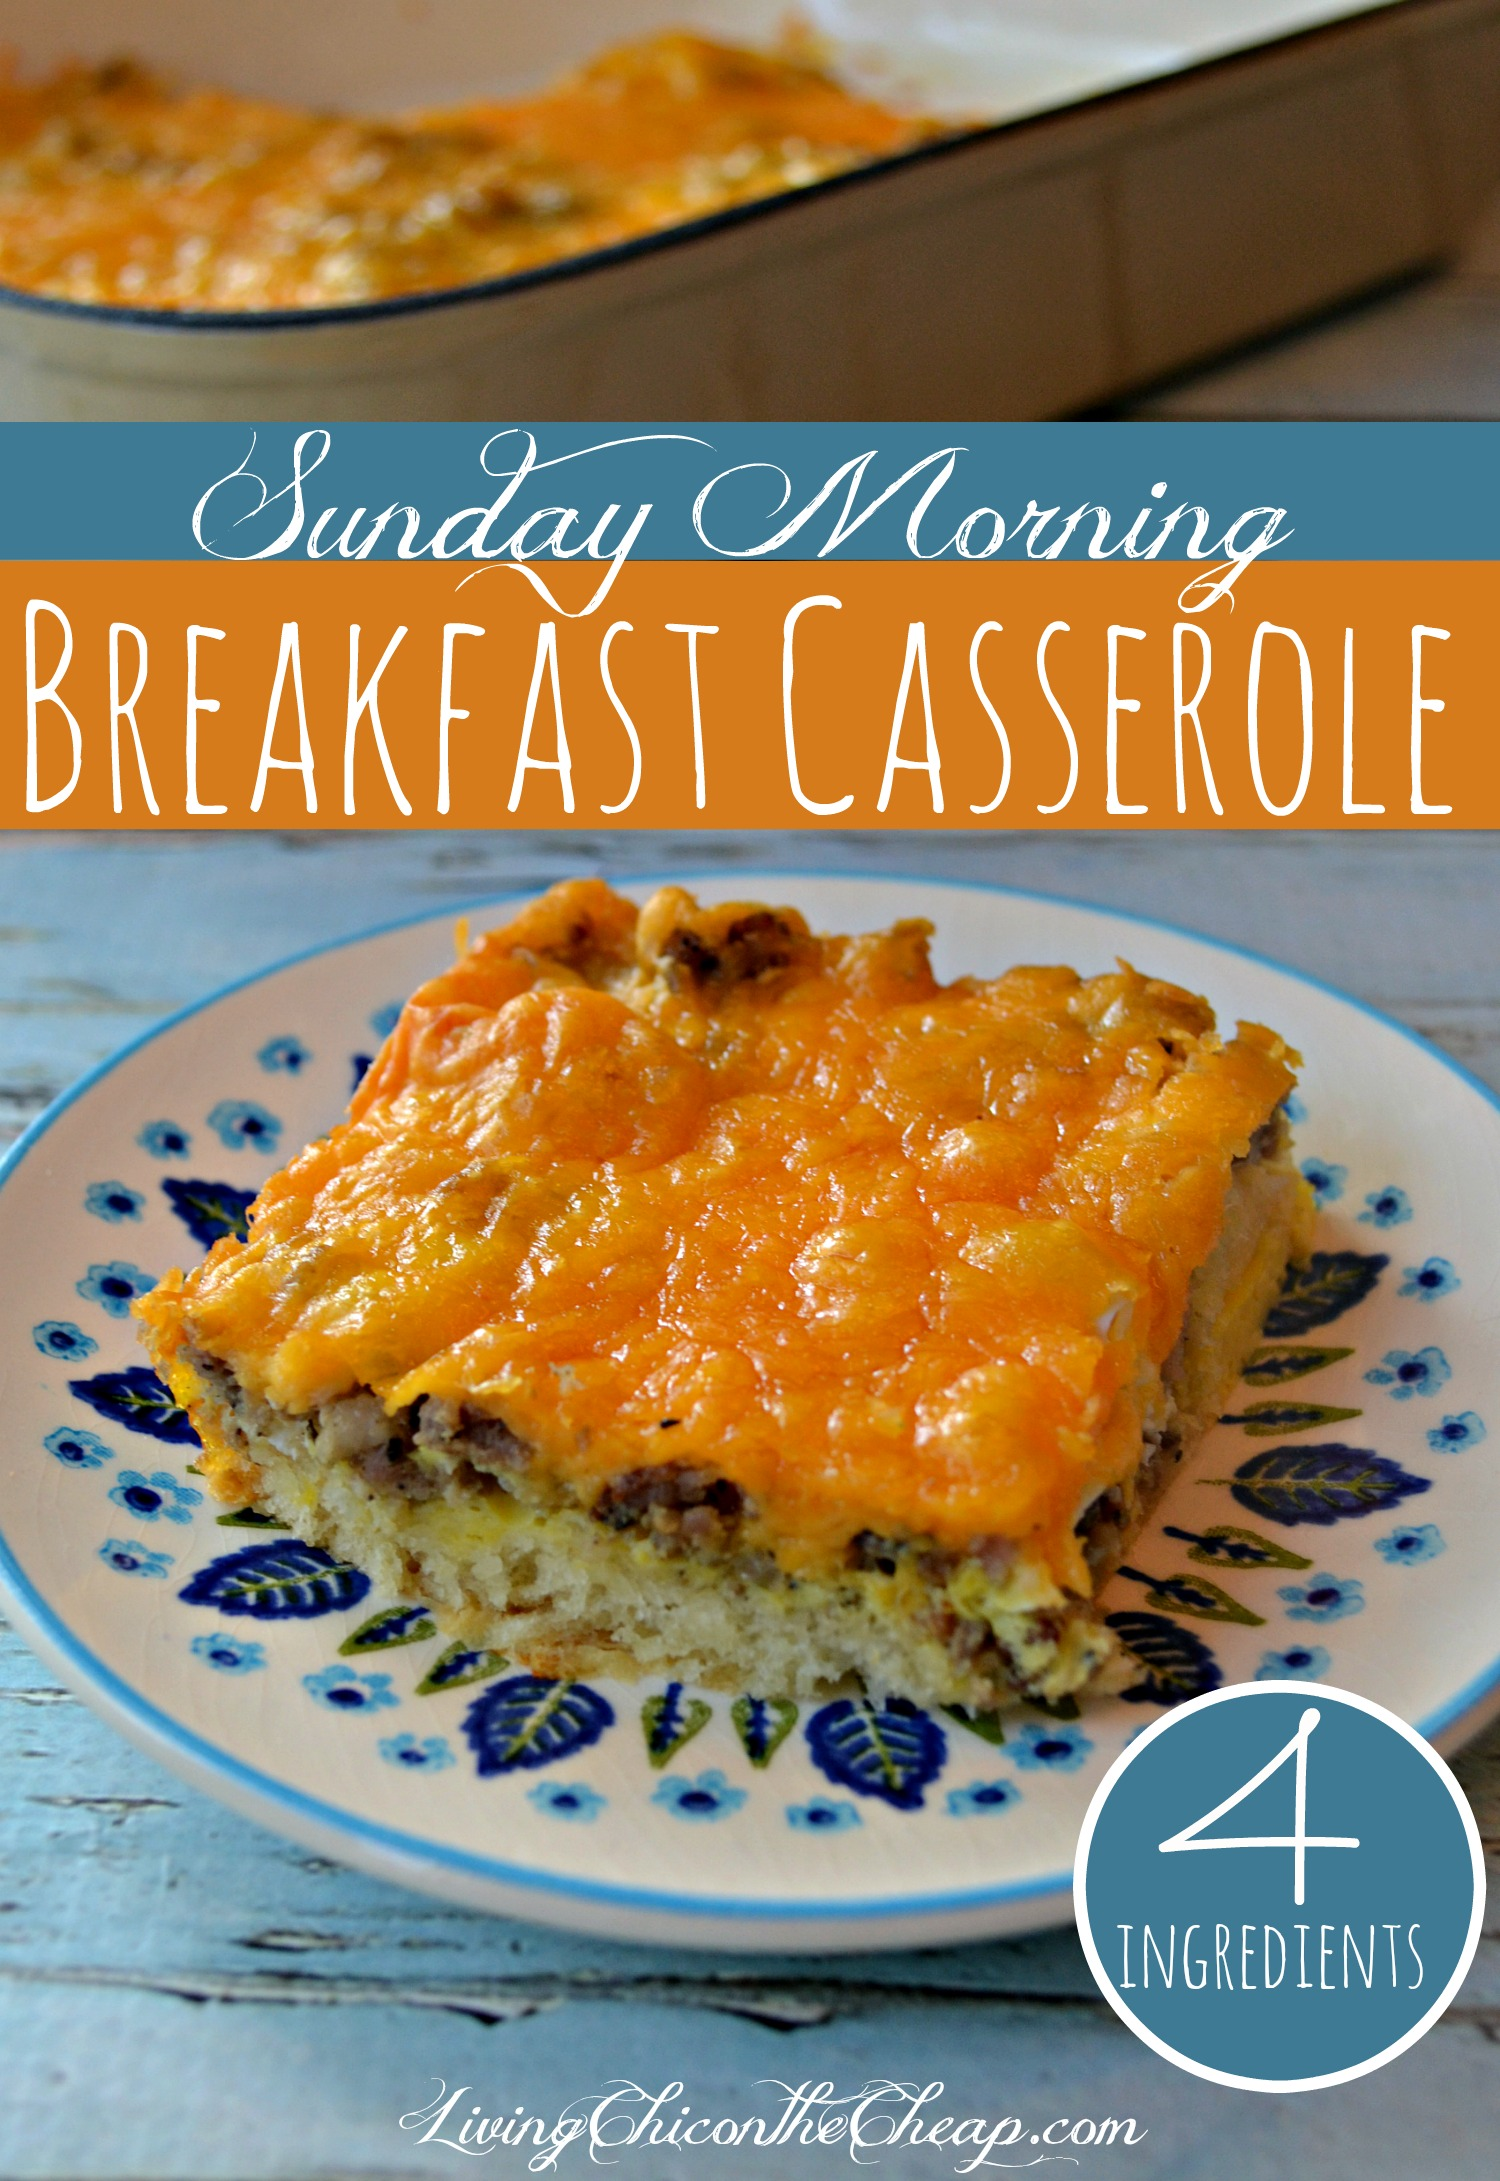 Sunday Morning Breakfast Casserole